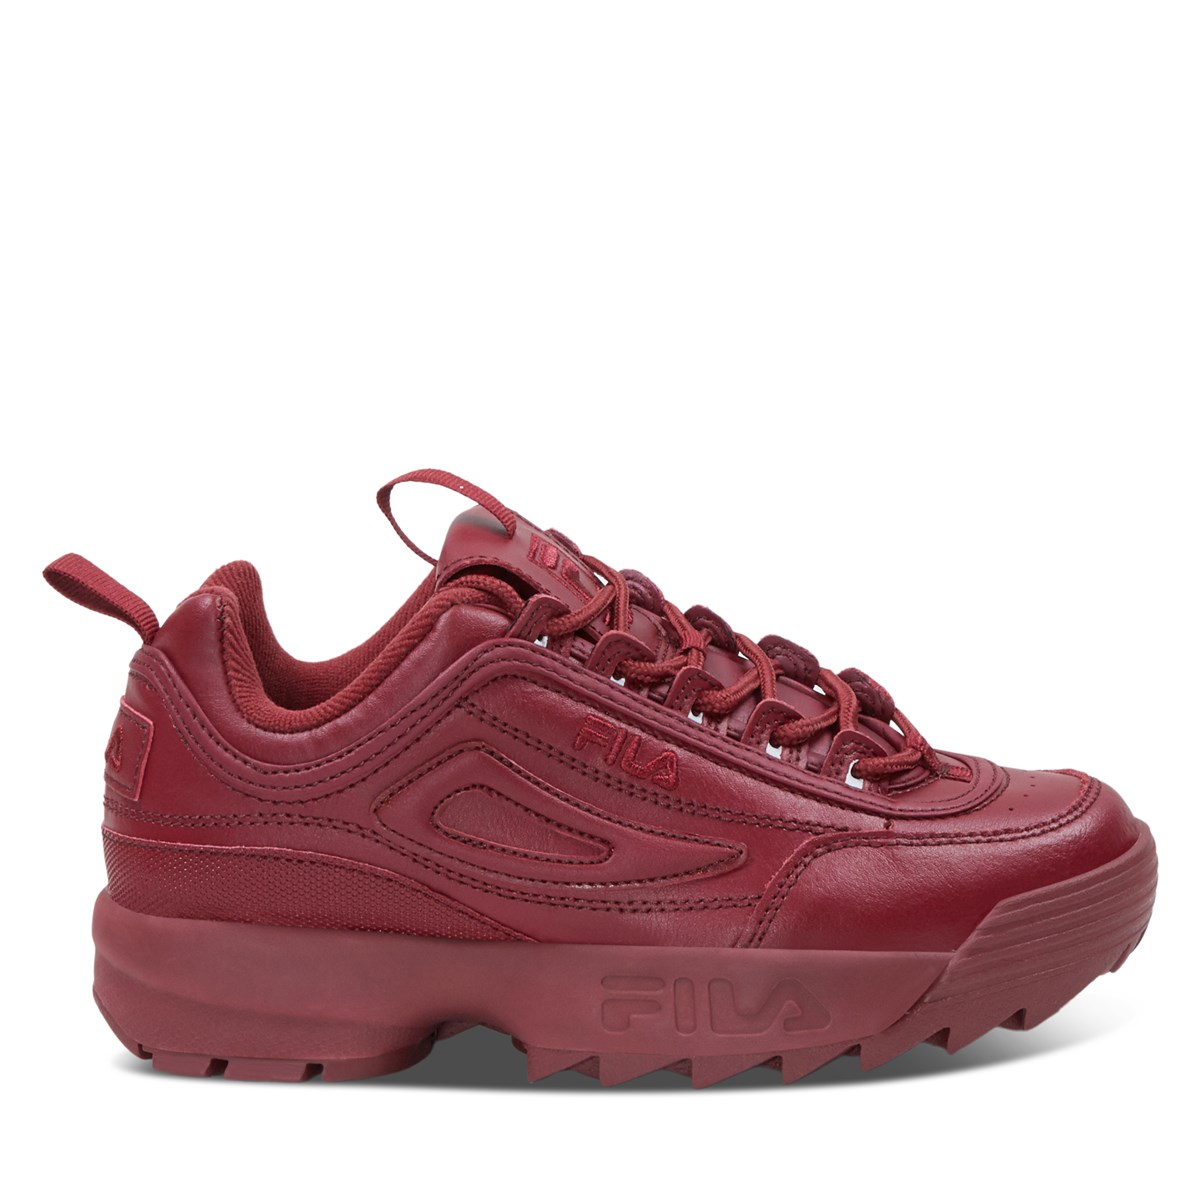 Women's Disruptor II Sneakers in All Red